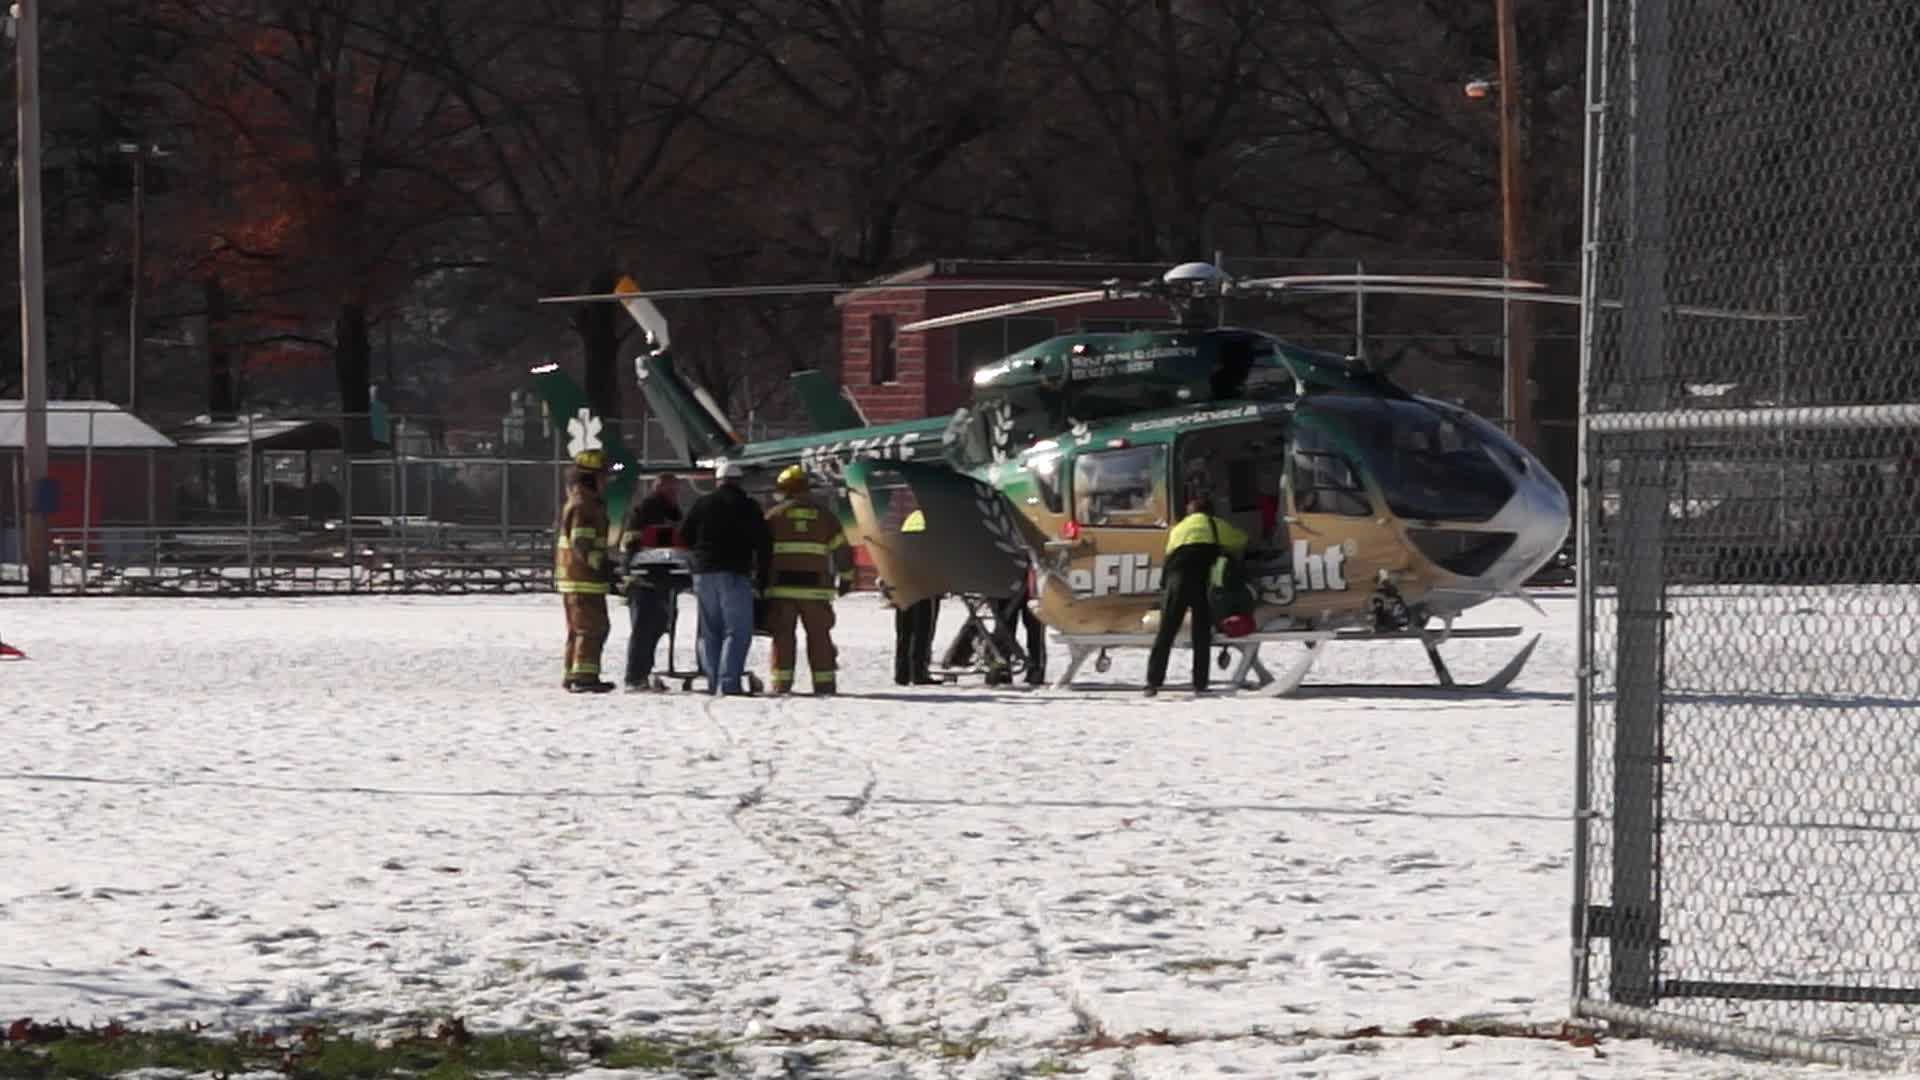 medical helicopter at Arnold shooting